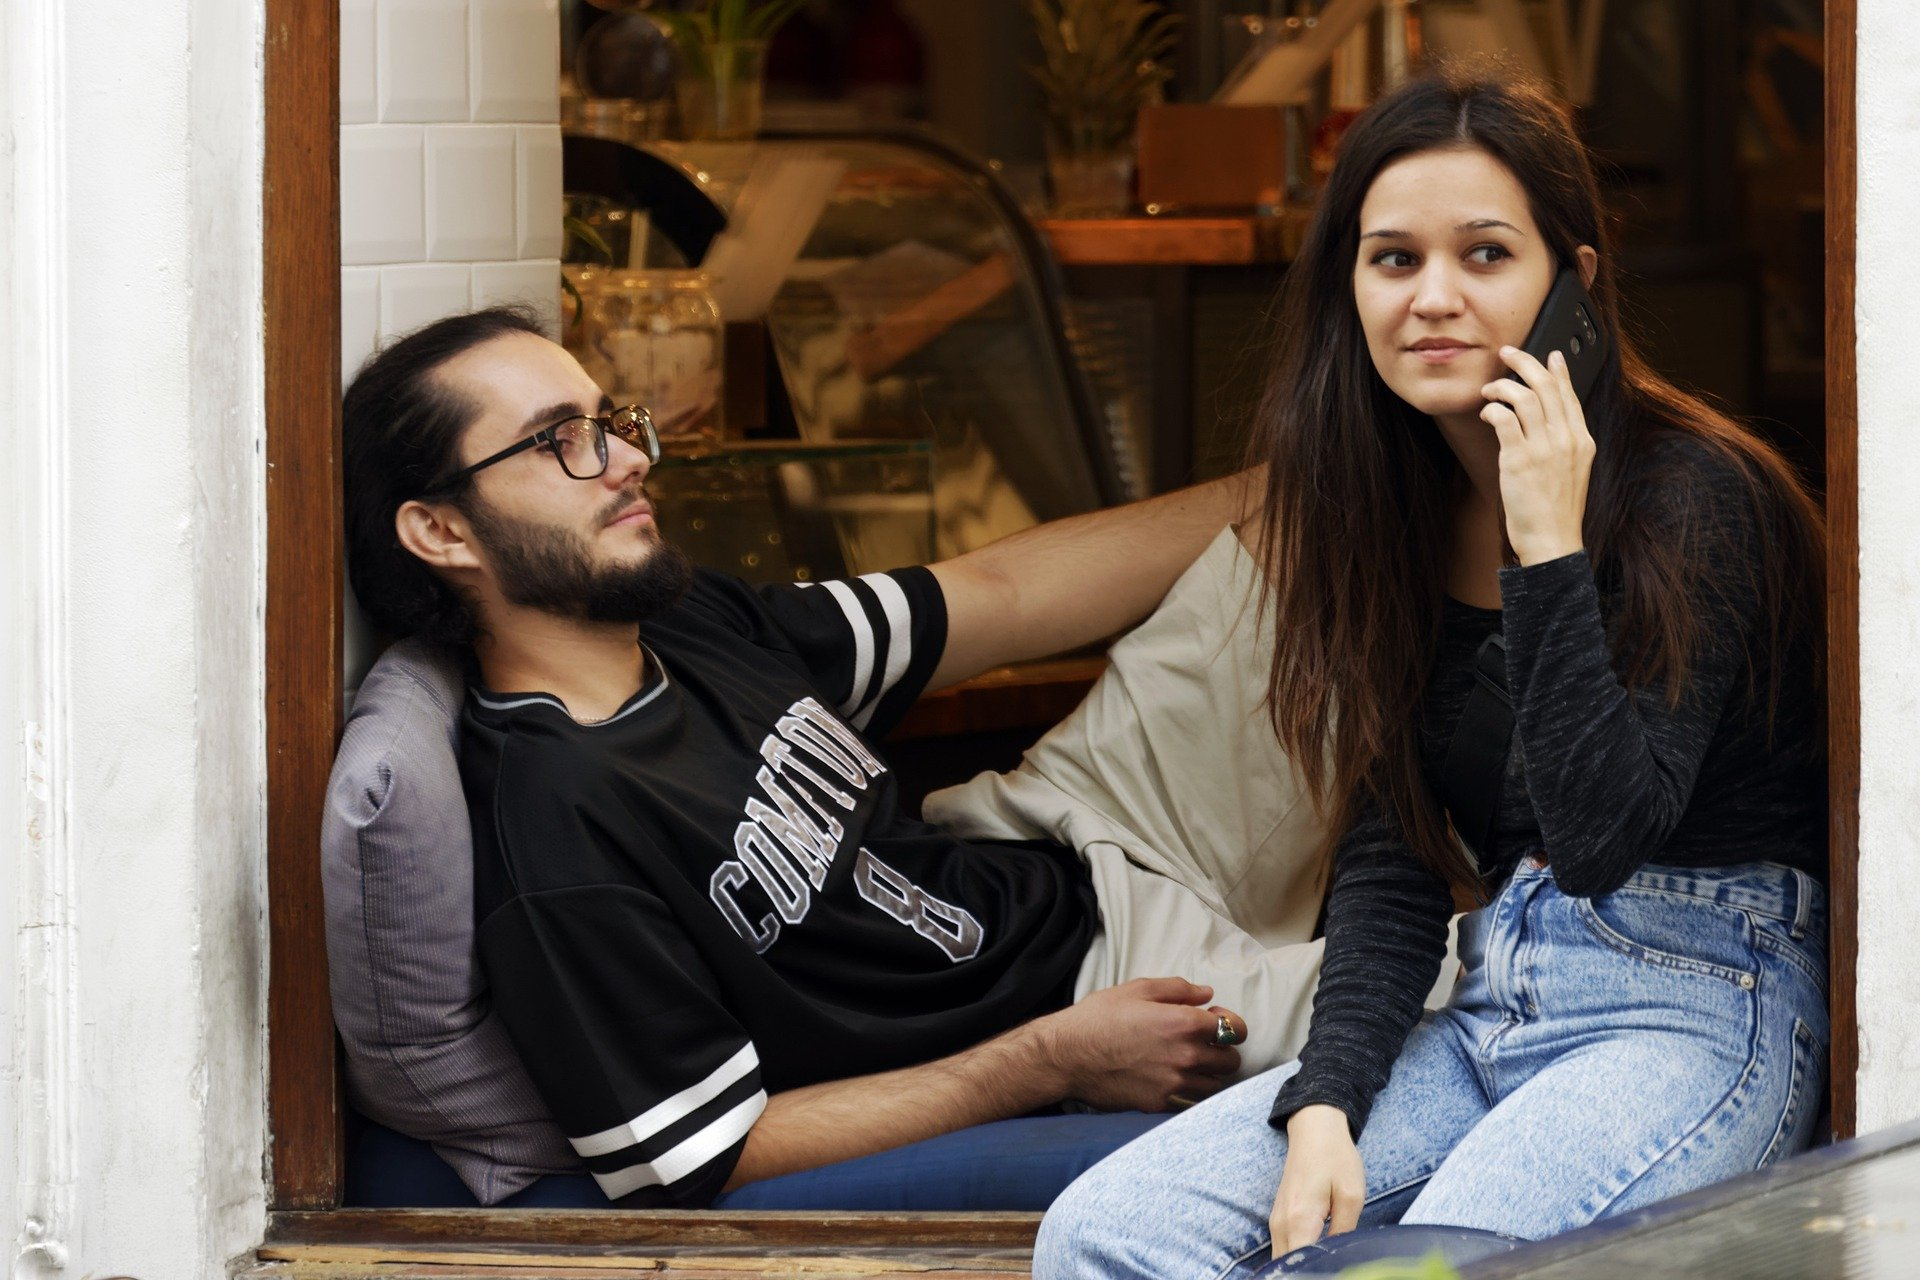 Low satisfaction in a relationship can be thanks to phubbing